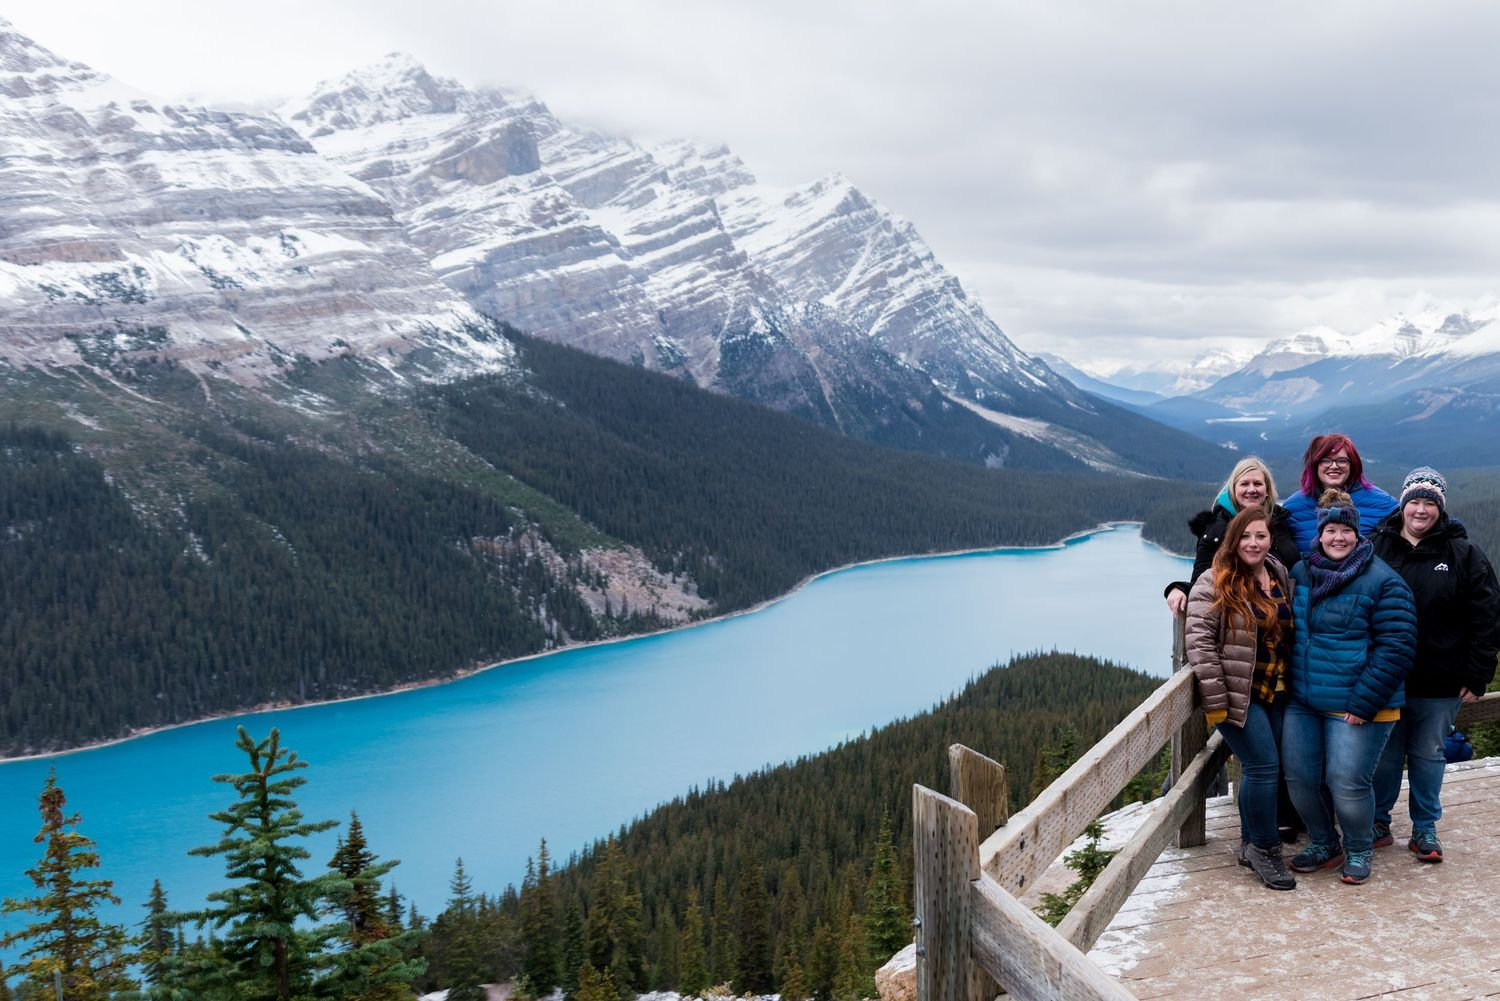 five girls standing on wooden deck in front of Peyto Lake, Canada